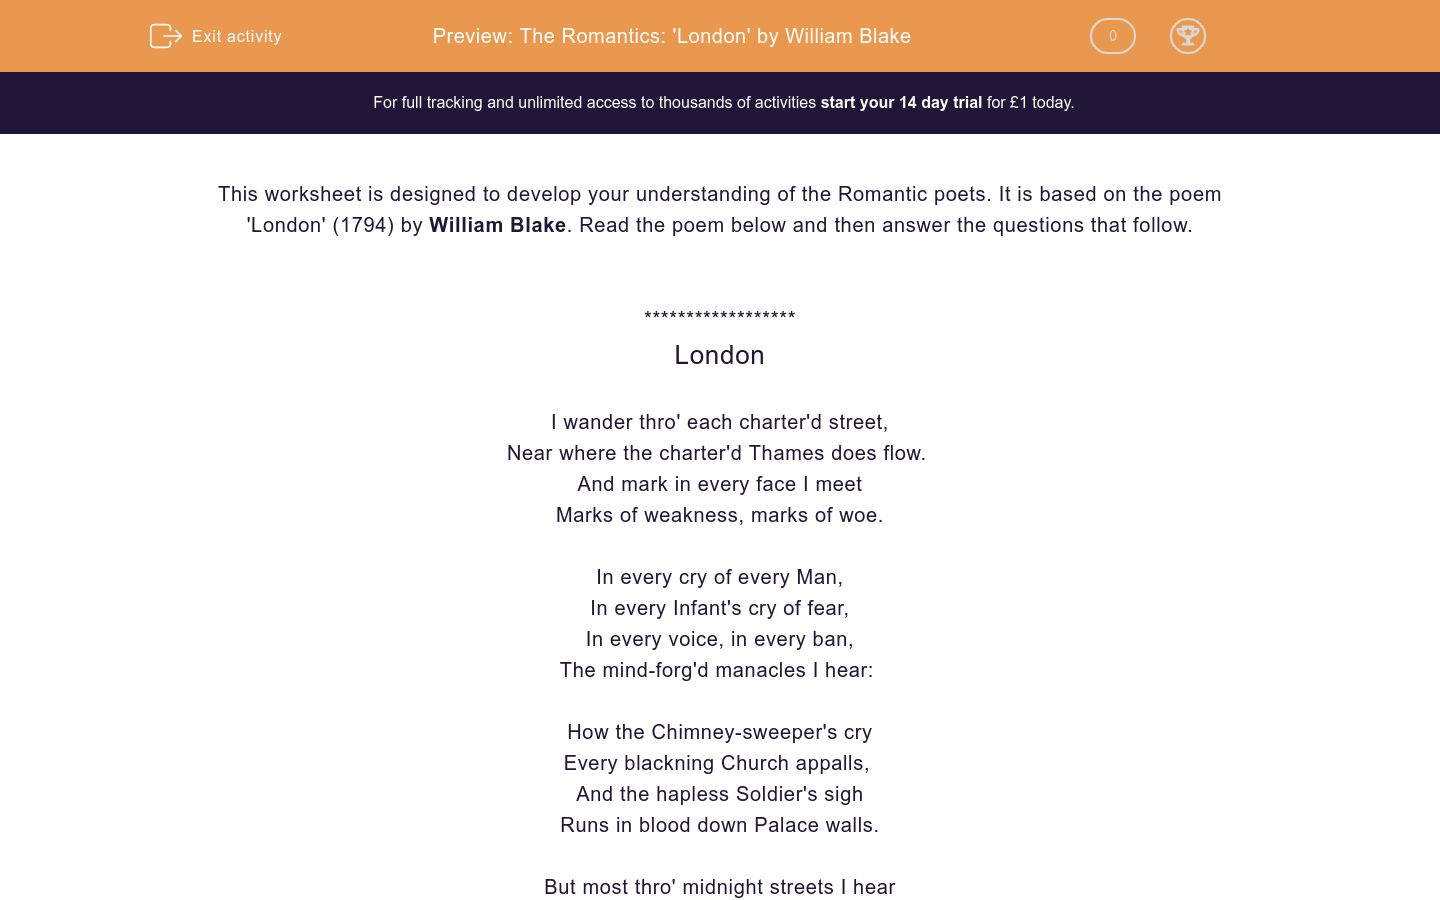 'The Romantics: 'London' by William Blake' worksheet